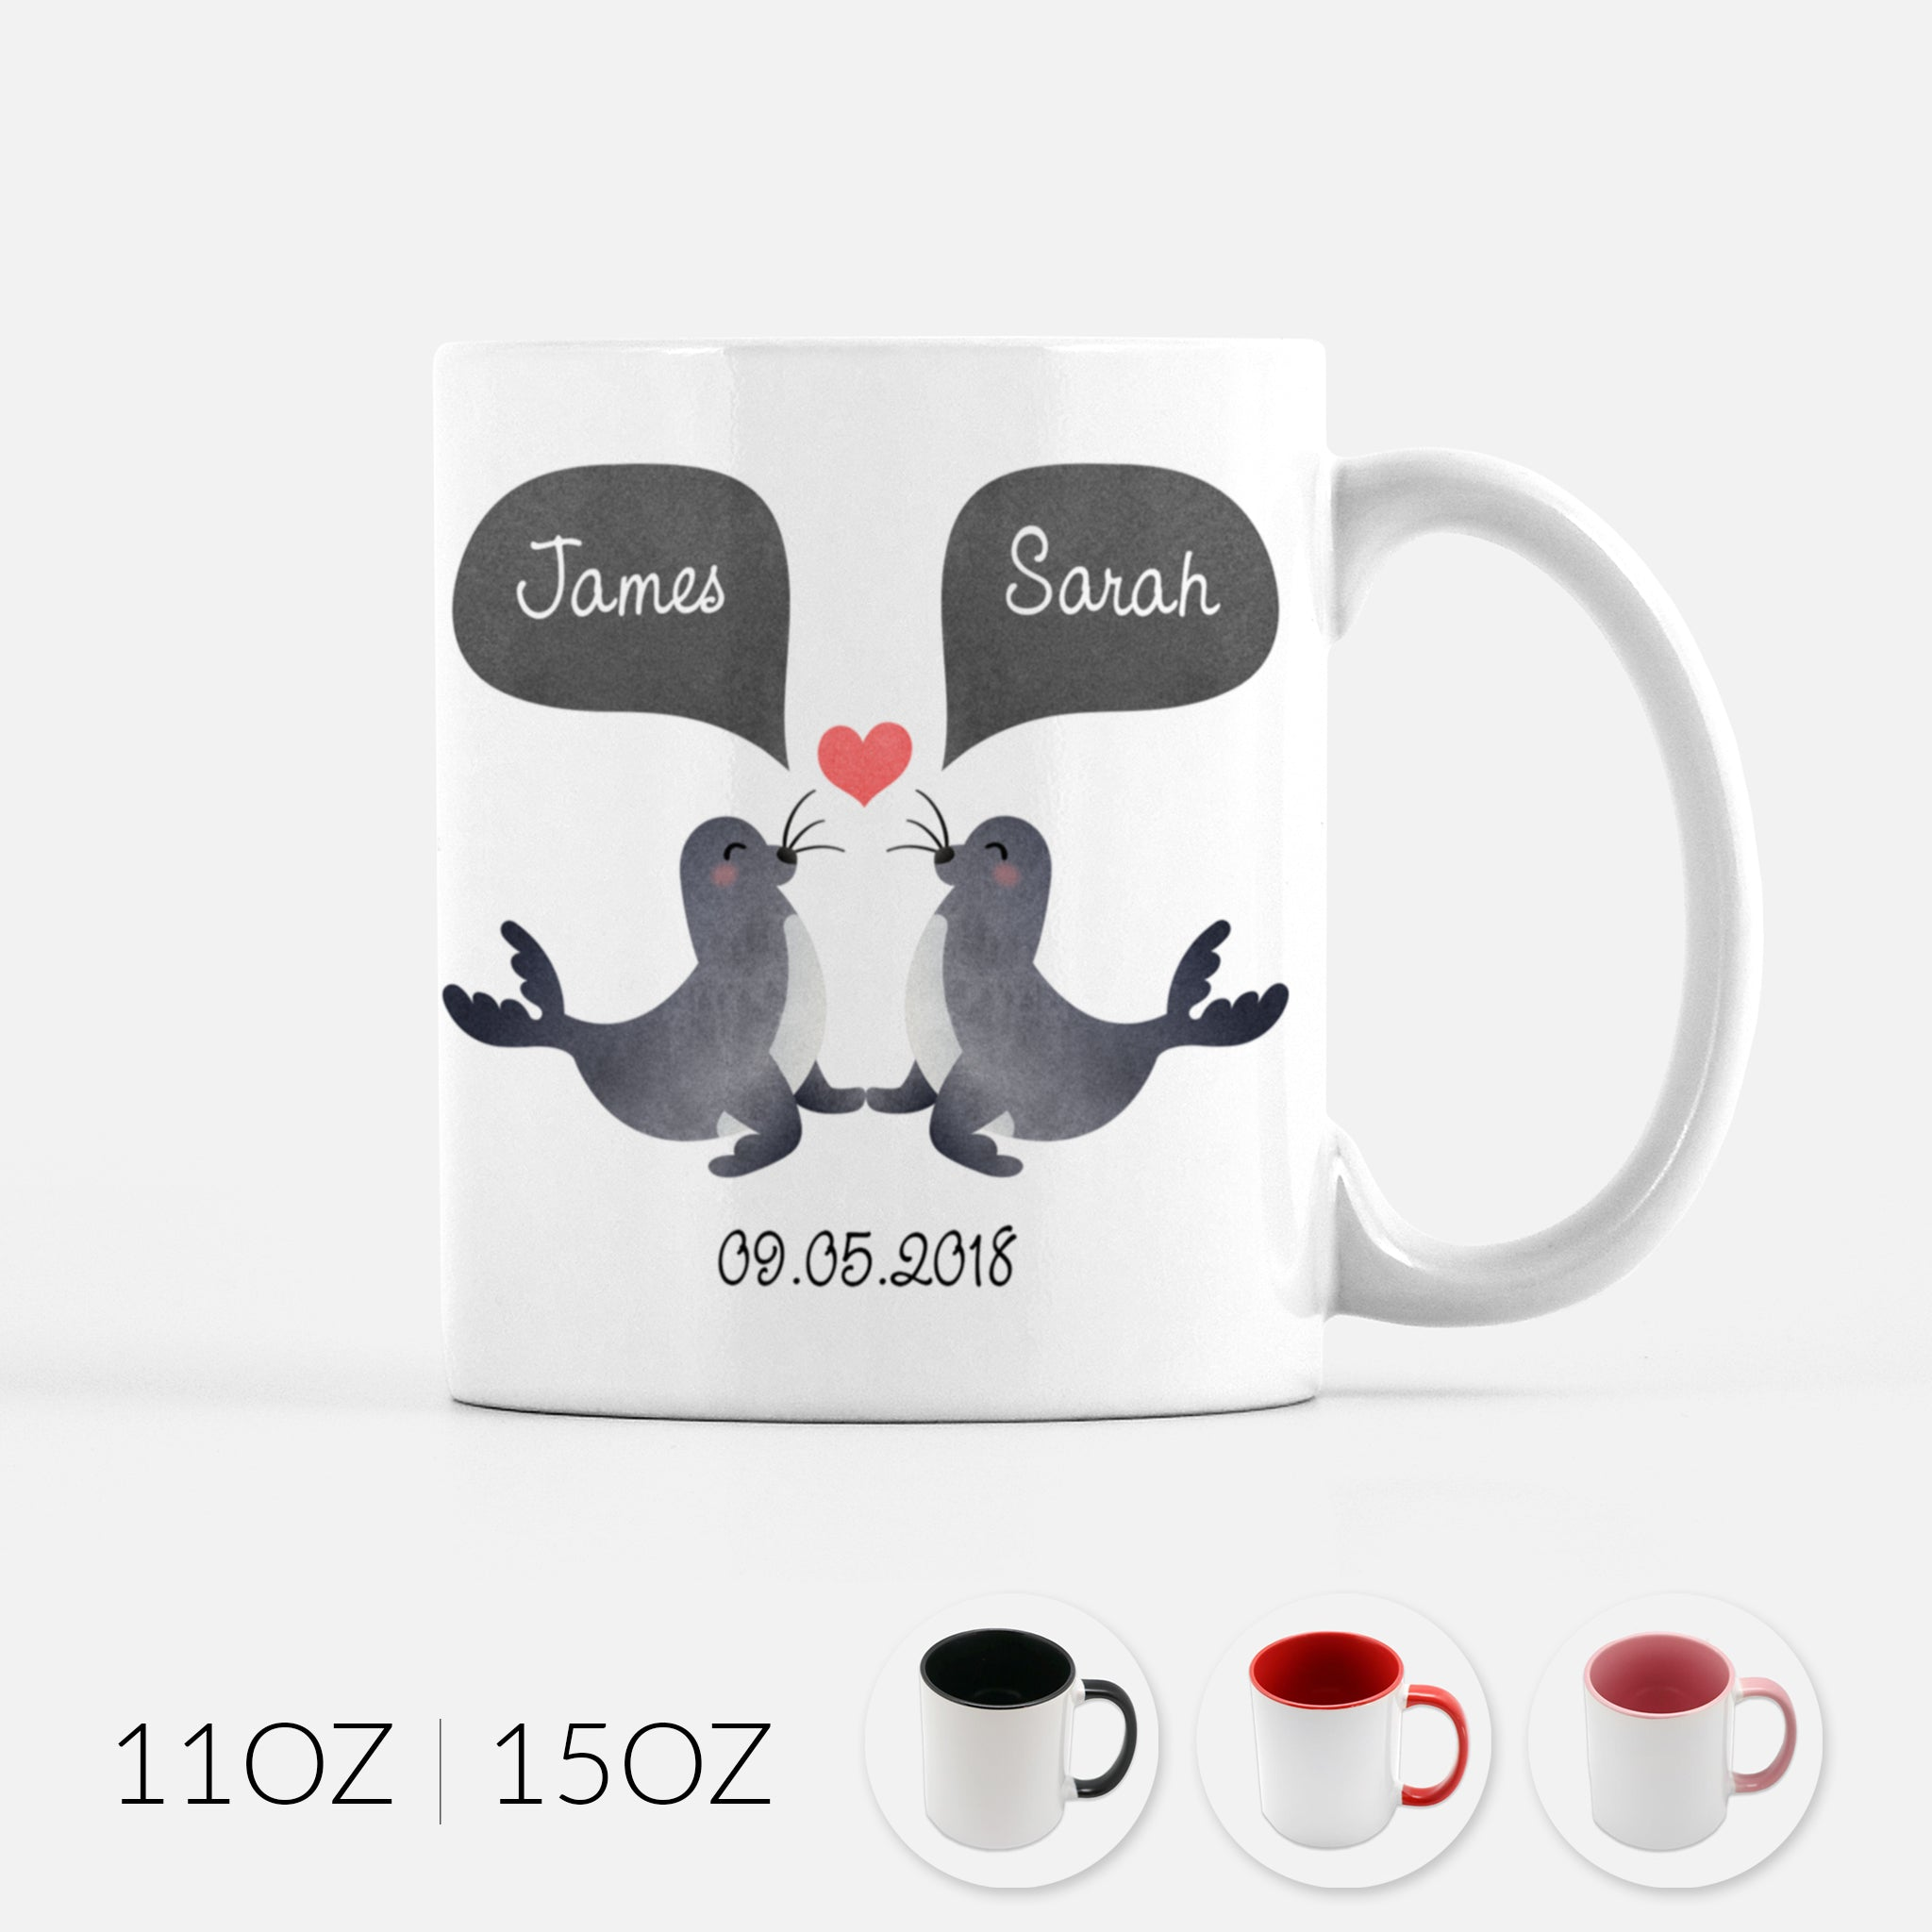 Personalized Seal Sea Lion Couple Ceramic Coffee Mug for Animal Lover - By Happy Cat Prints